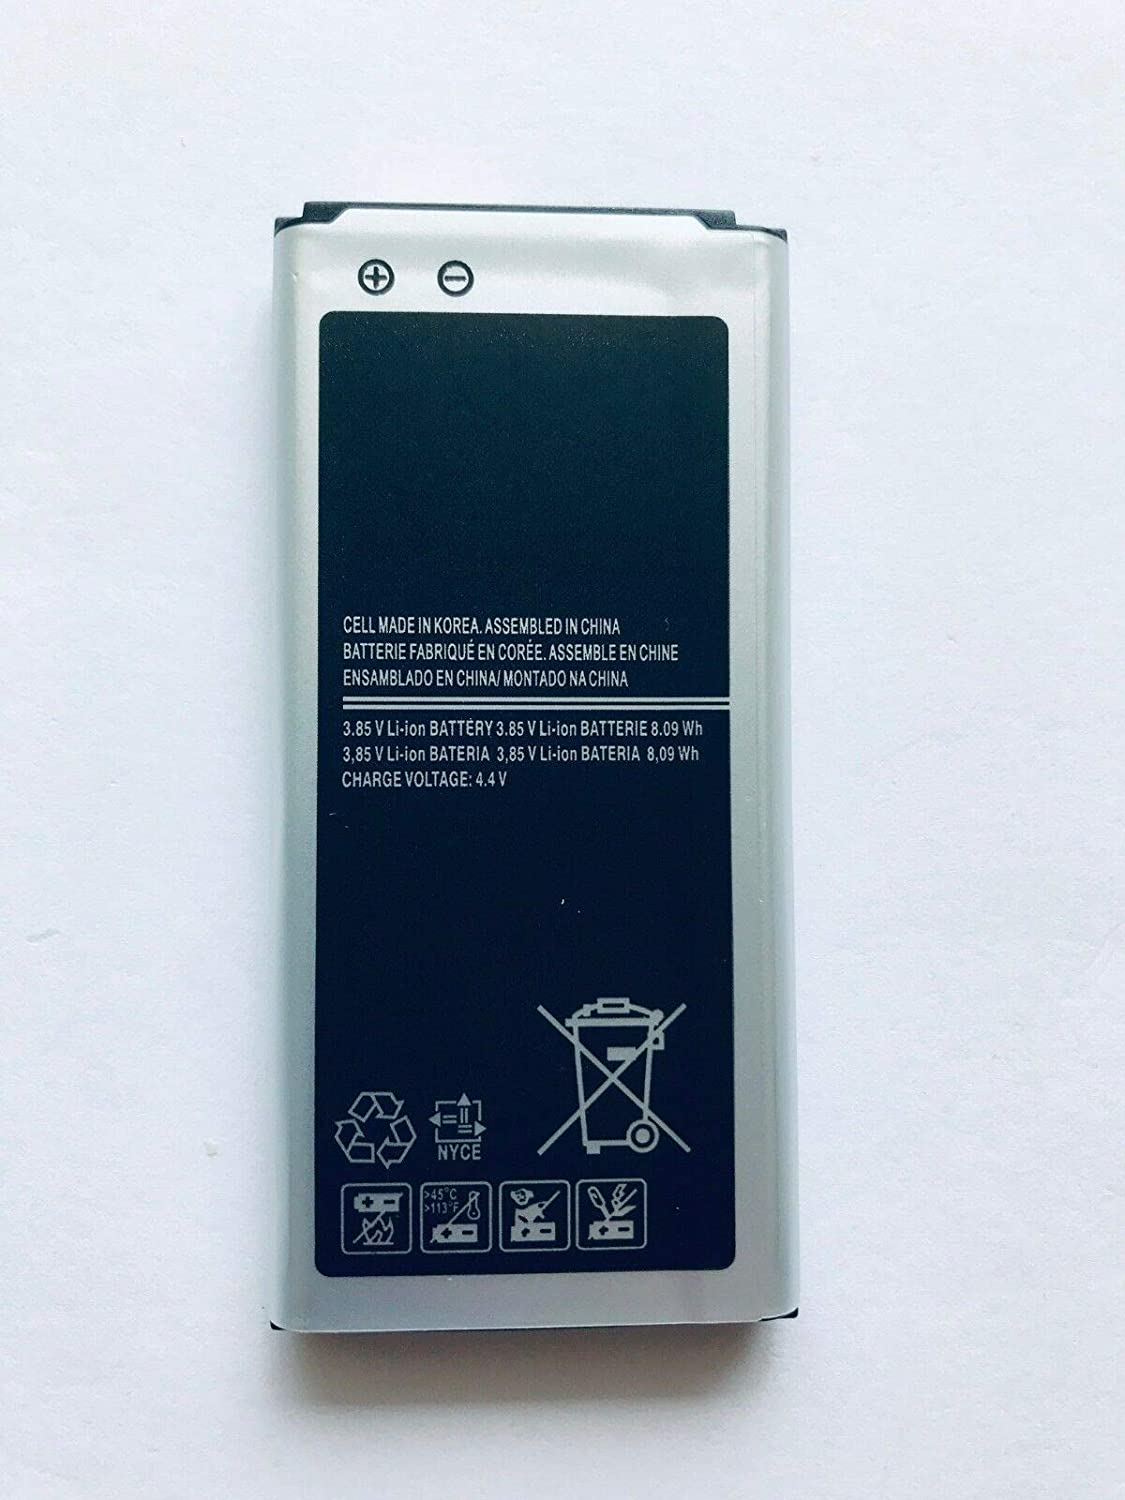 Replacement Battery for Samsung G800 G800A Galaxy S5 Mini SM-G800A G800M G800H G800R4 2100 MAH